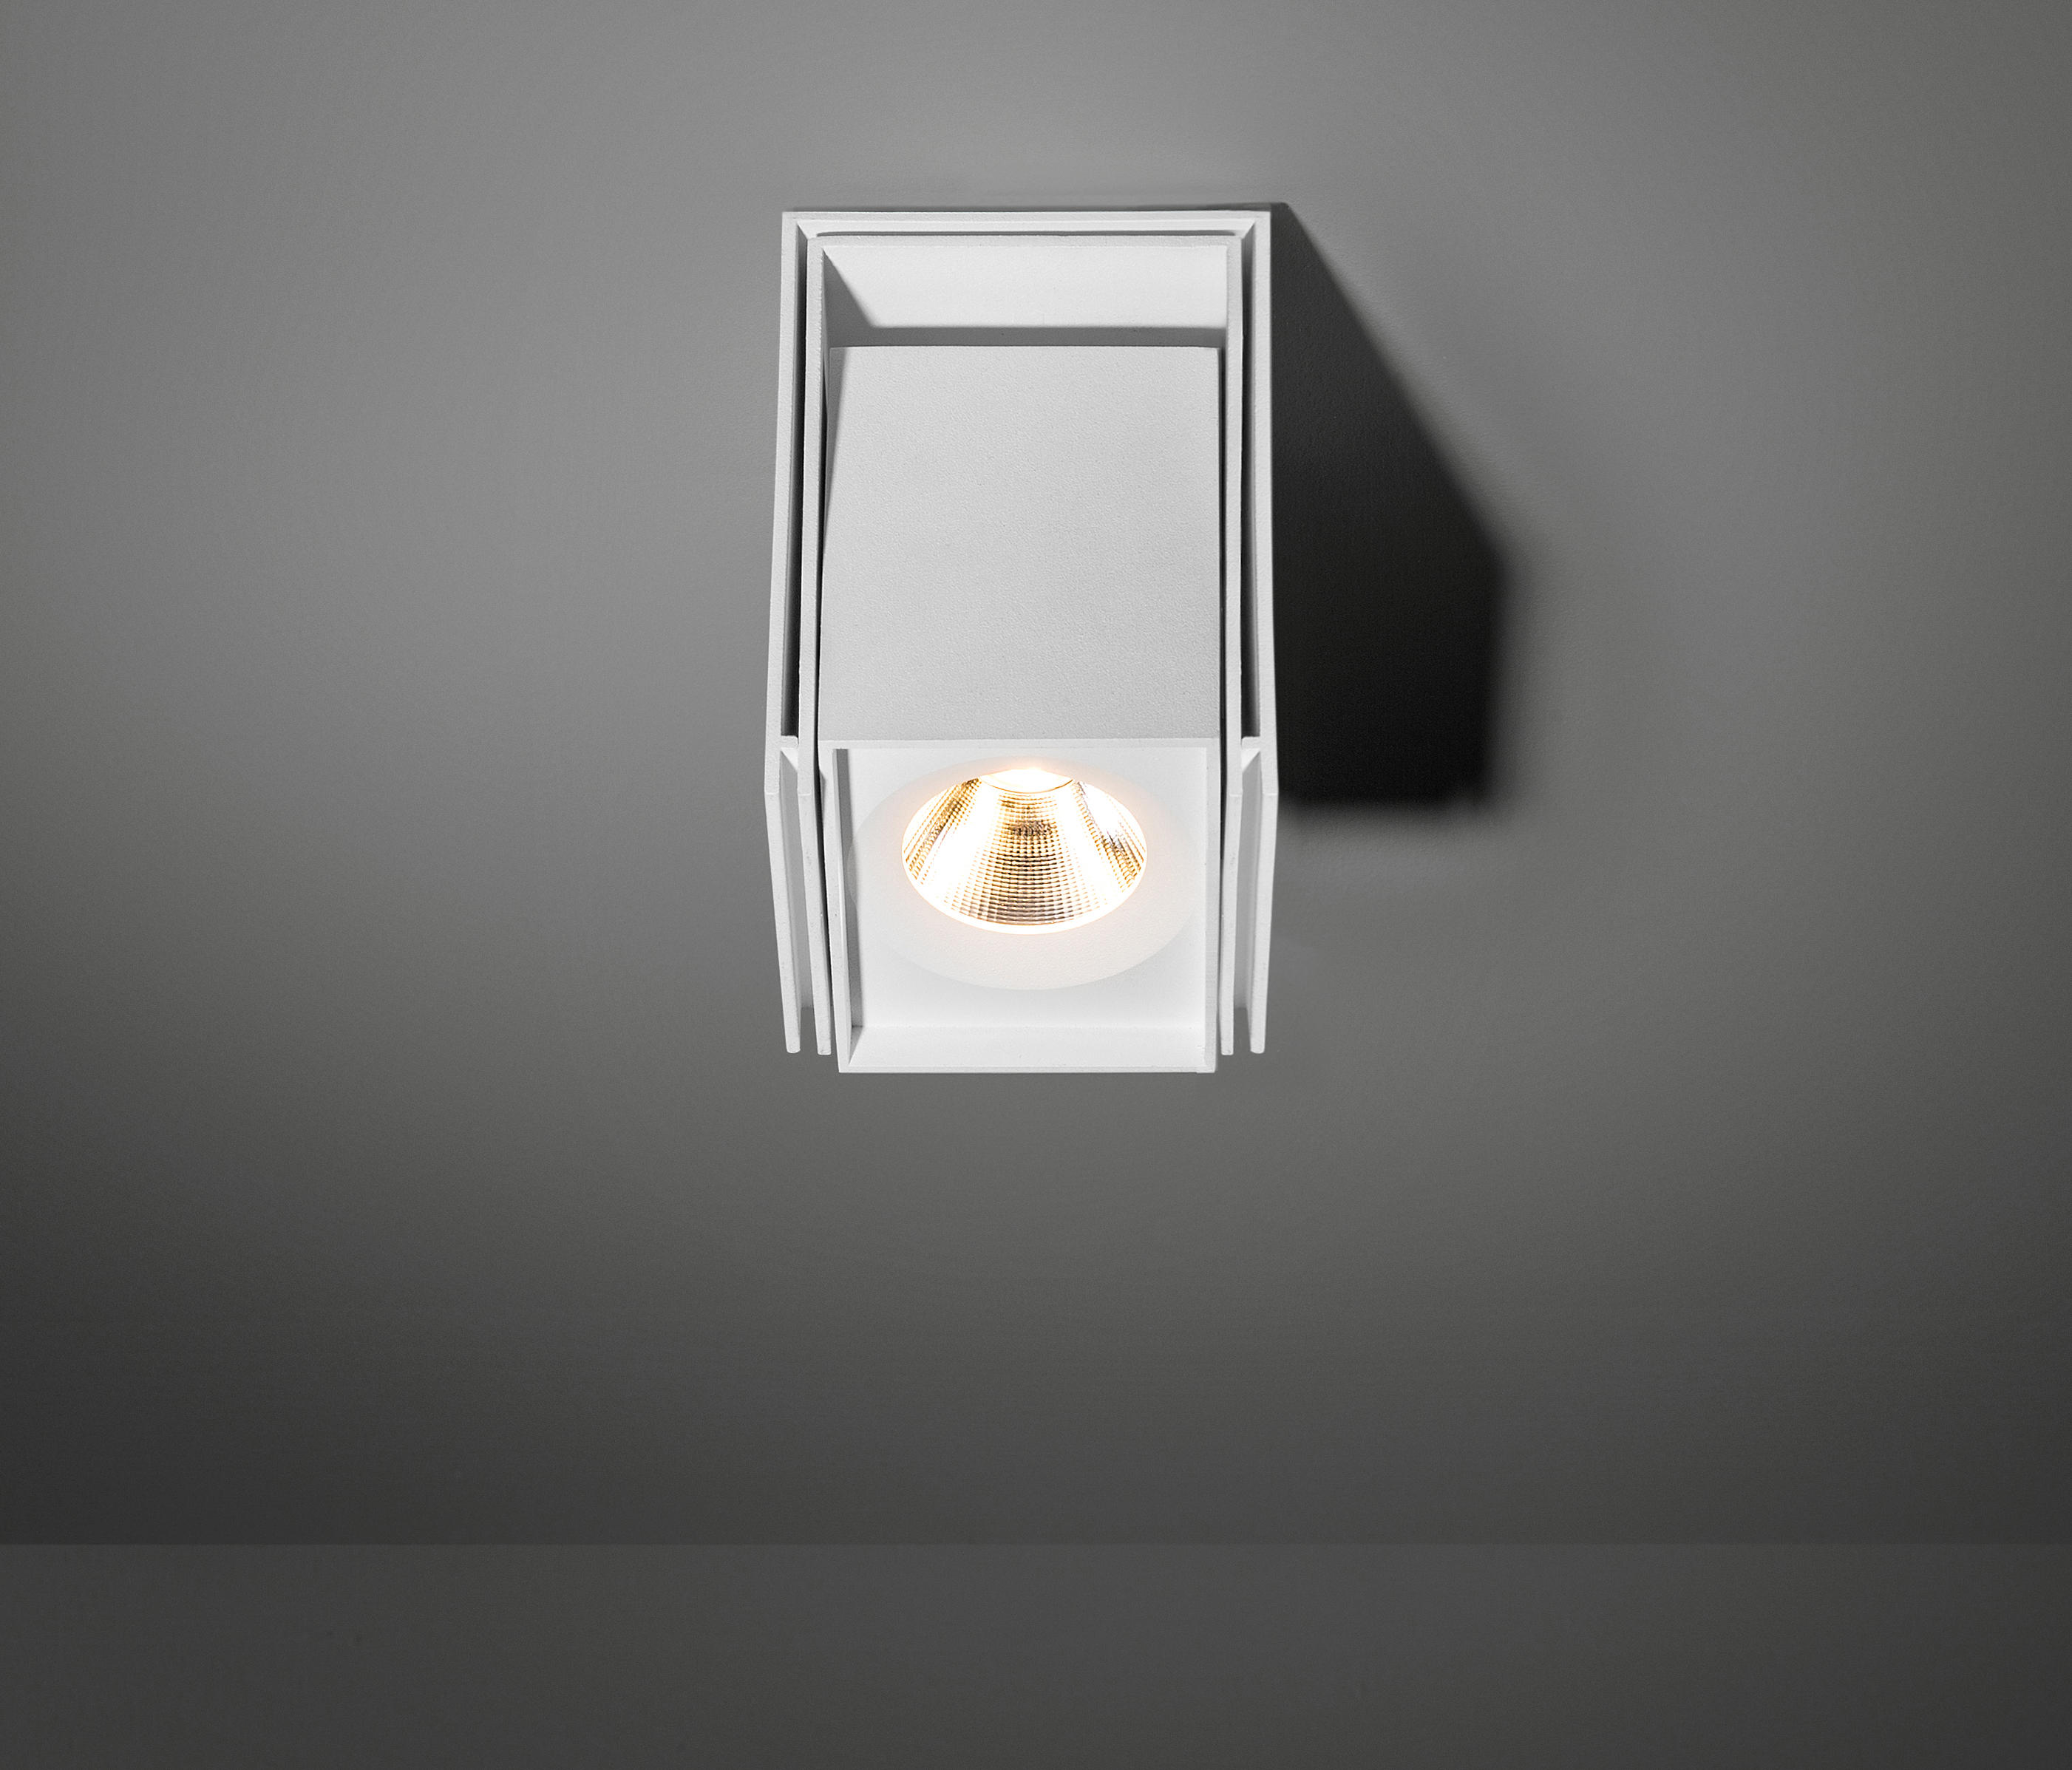 Ceiling Lights From Modular